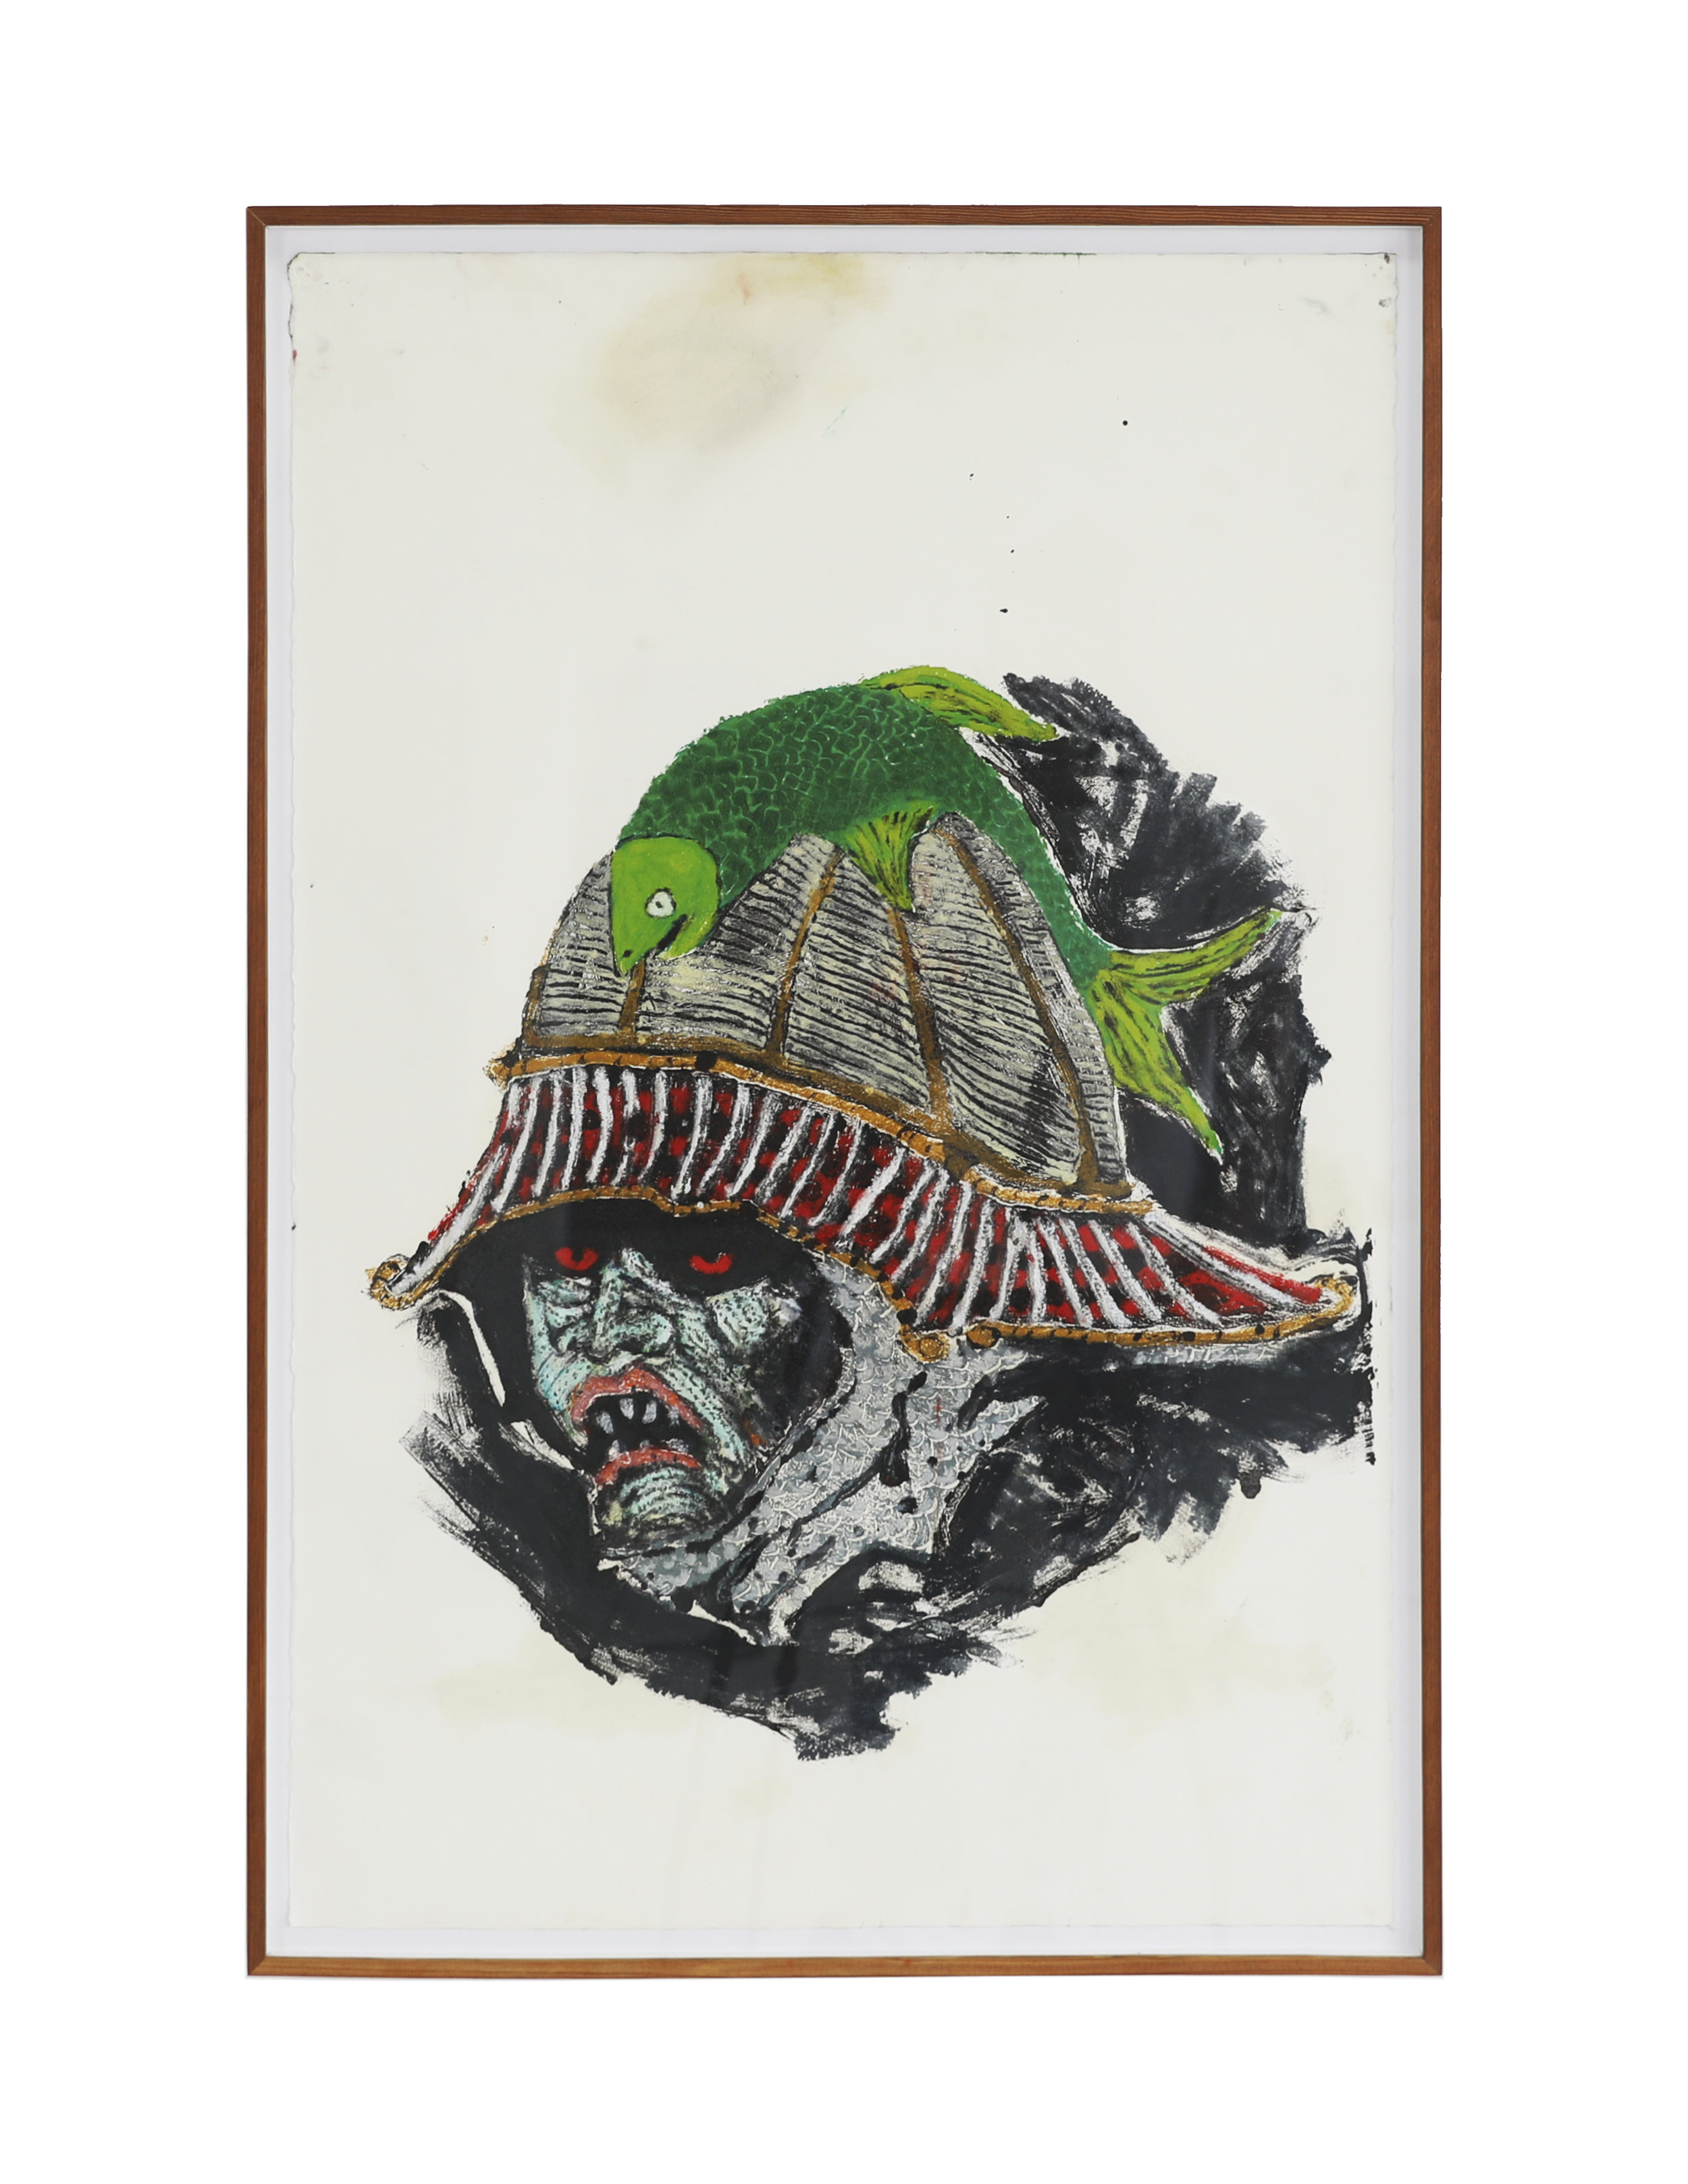 Armstrong, Zachary - TBI_ZA18.08.07 - Face for Keith oil on paper - (Res300).jpg